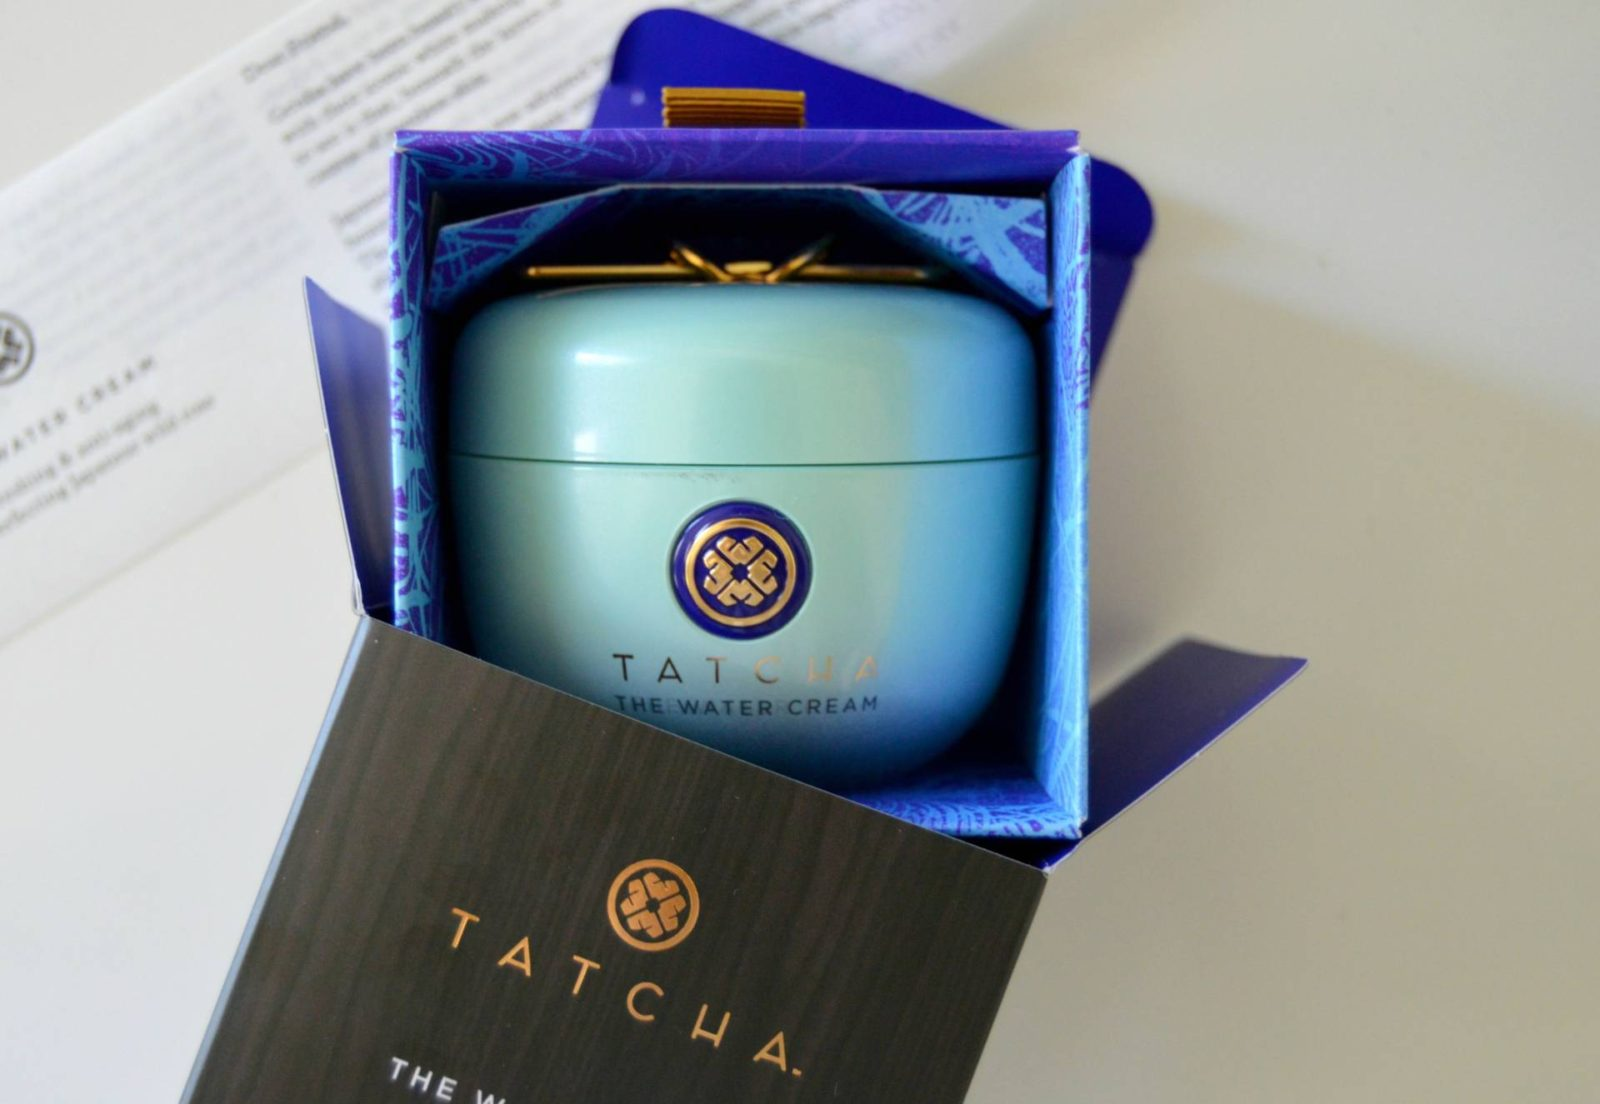 TATCHA The Water Cream – My Oil-Free Moisturizer Upgrade for Spring